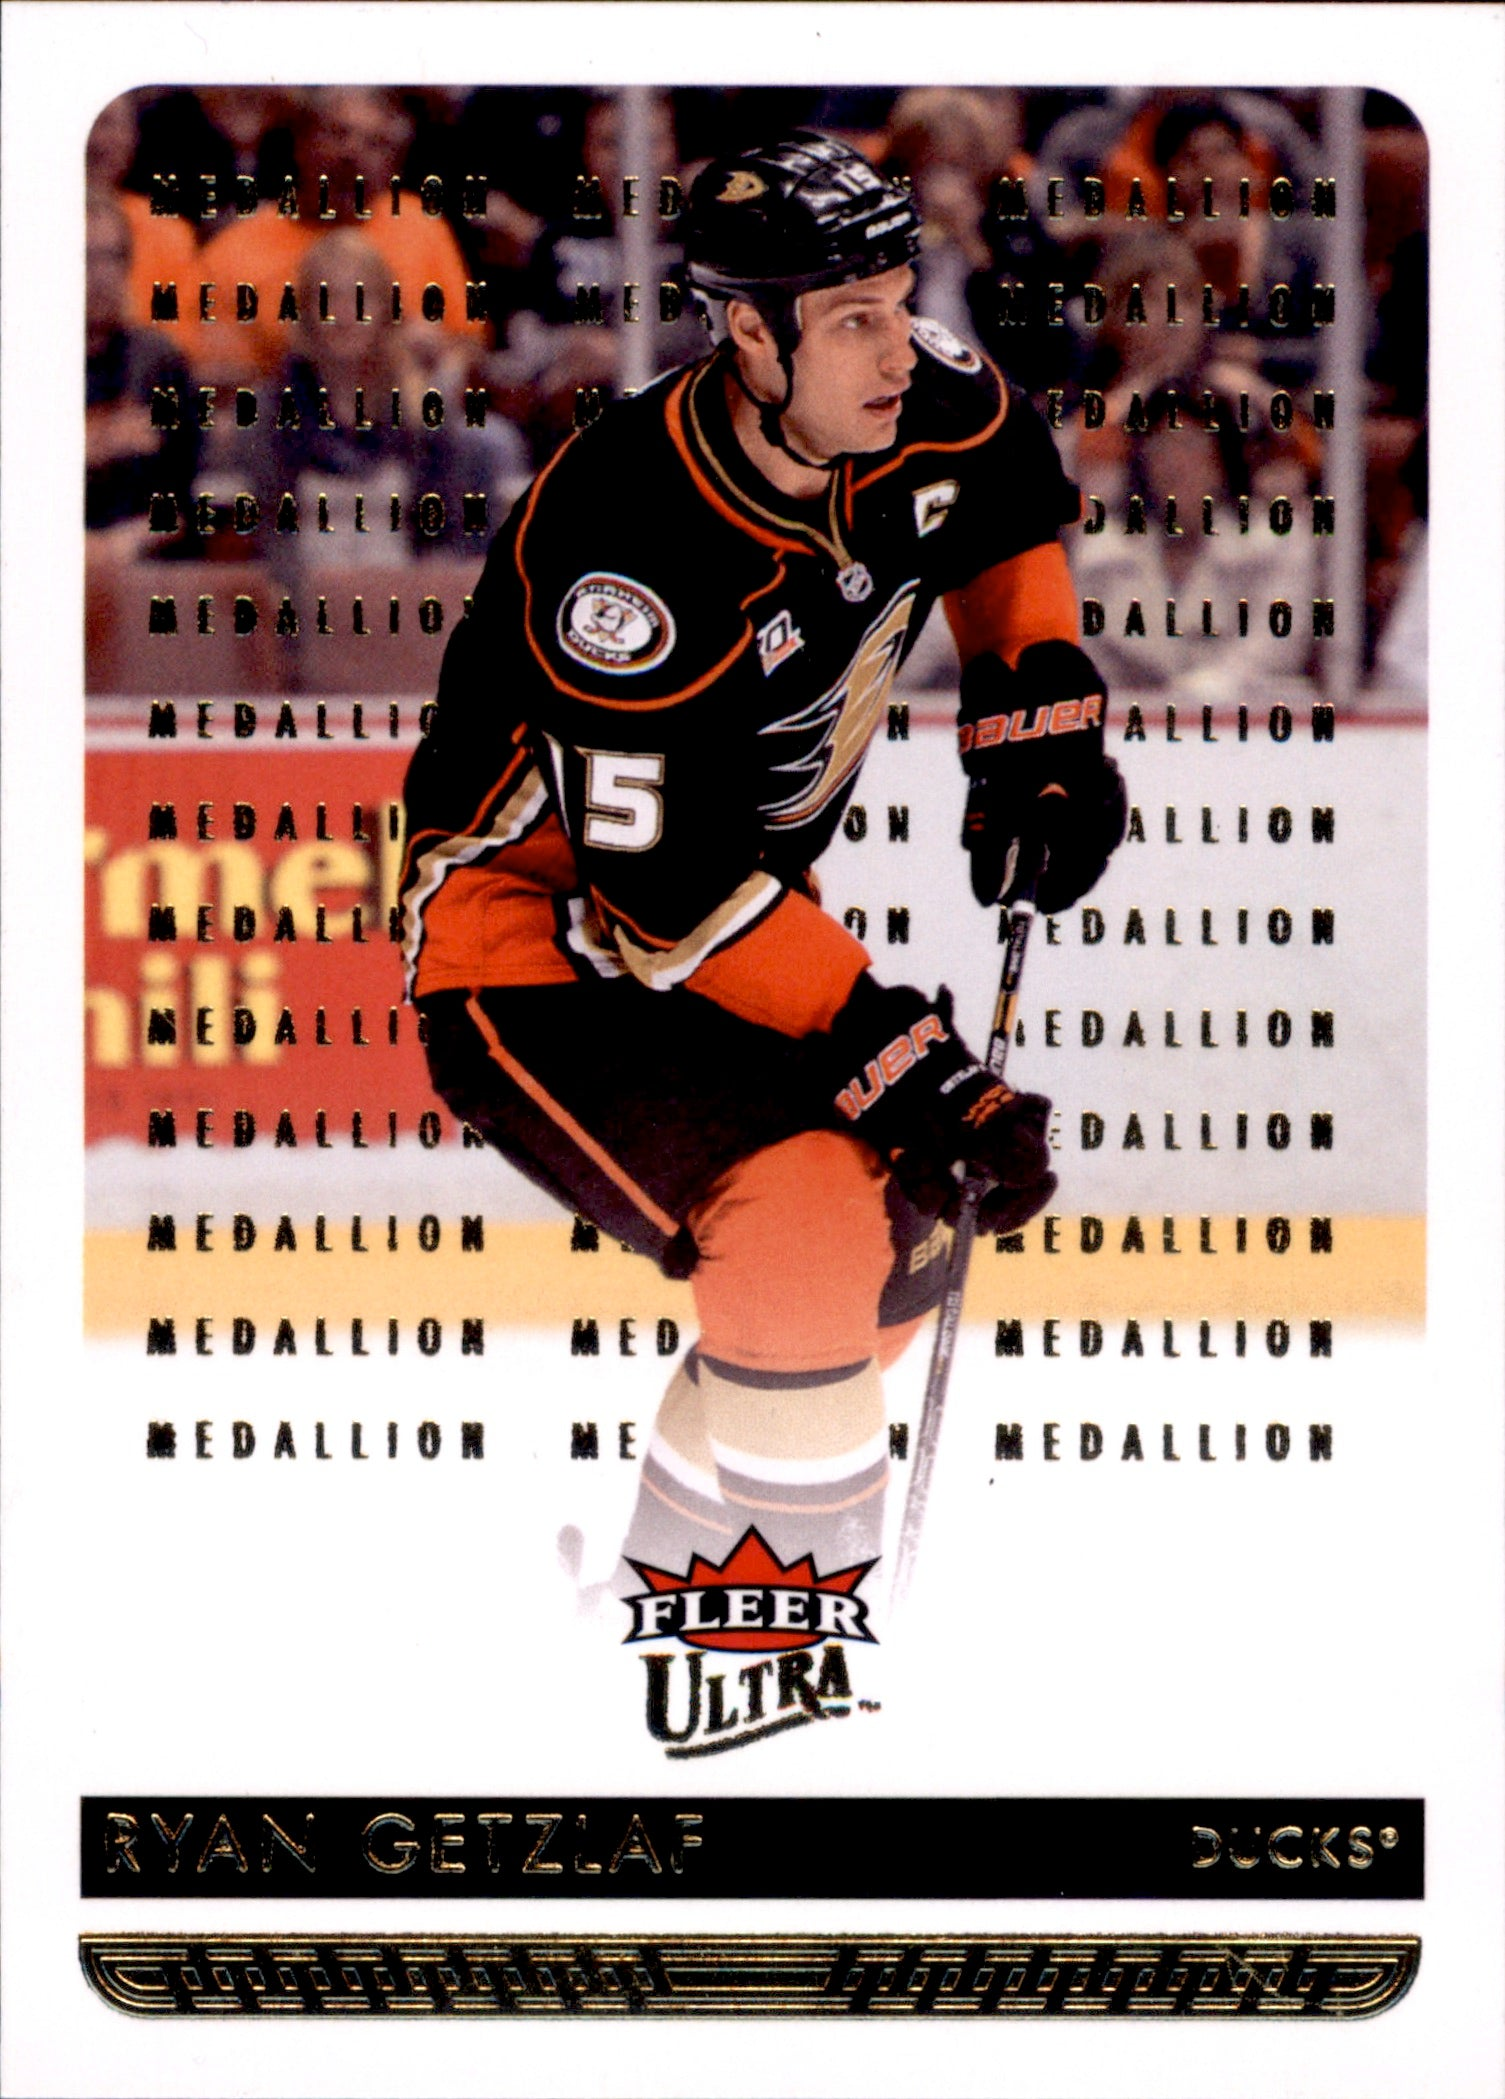 2014-15 Fleer Ultra Gold Medallion #005 Ryan Getzlaf | Eastridge Sports Cards